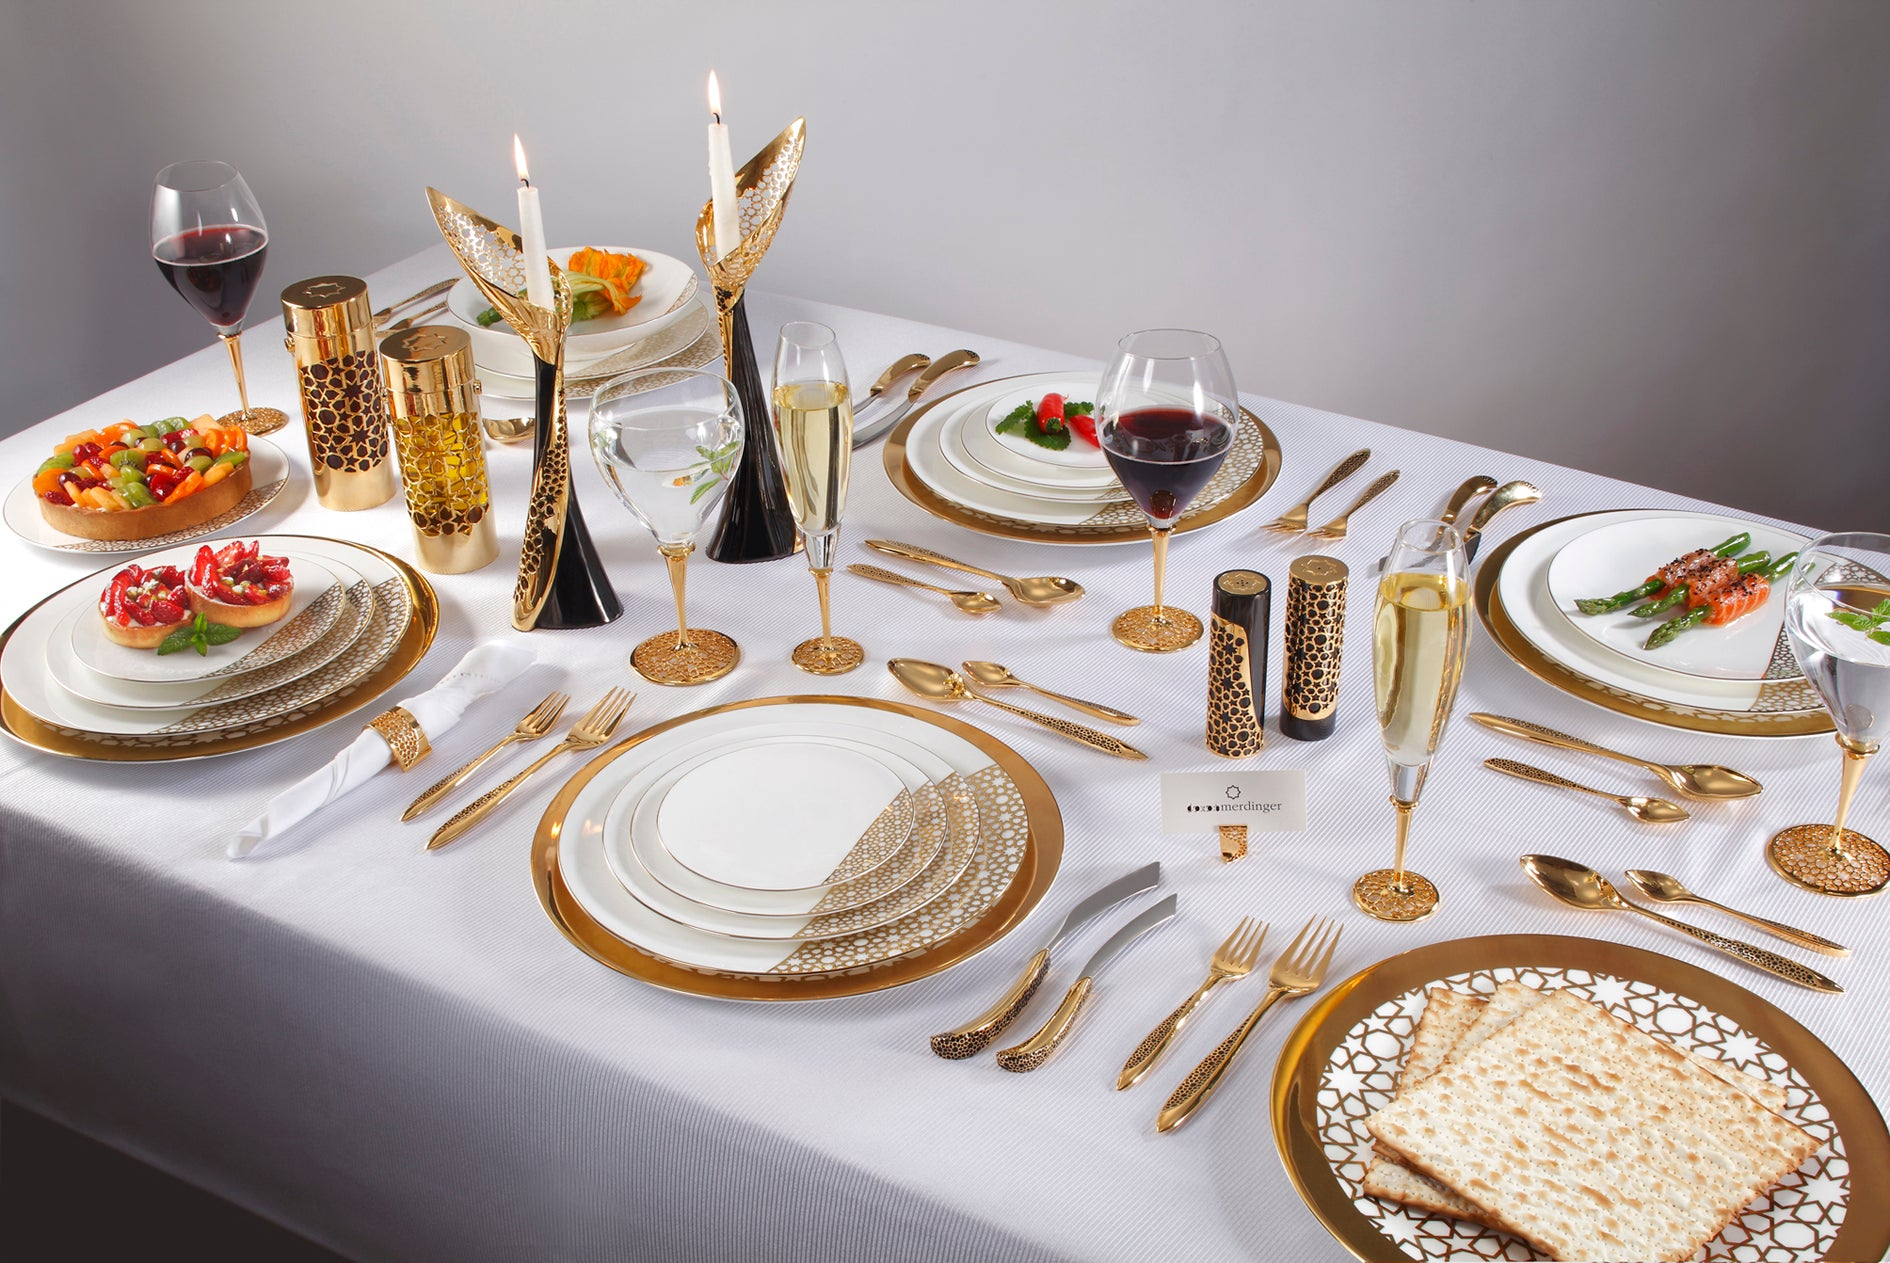 An entertaining dinner party isnu0027t complete with elegant tableware. Impress your guest with a succulent dish served on Merdingeru0027s meaningful tableware for ... & Merdinger Tableware: Inspiring both the Senses and the Mind | Luxury ...